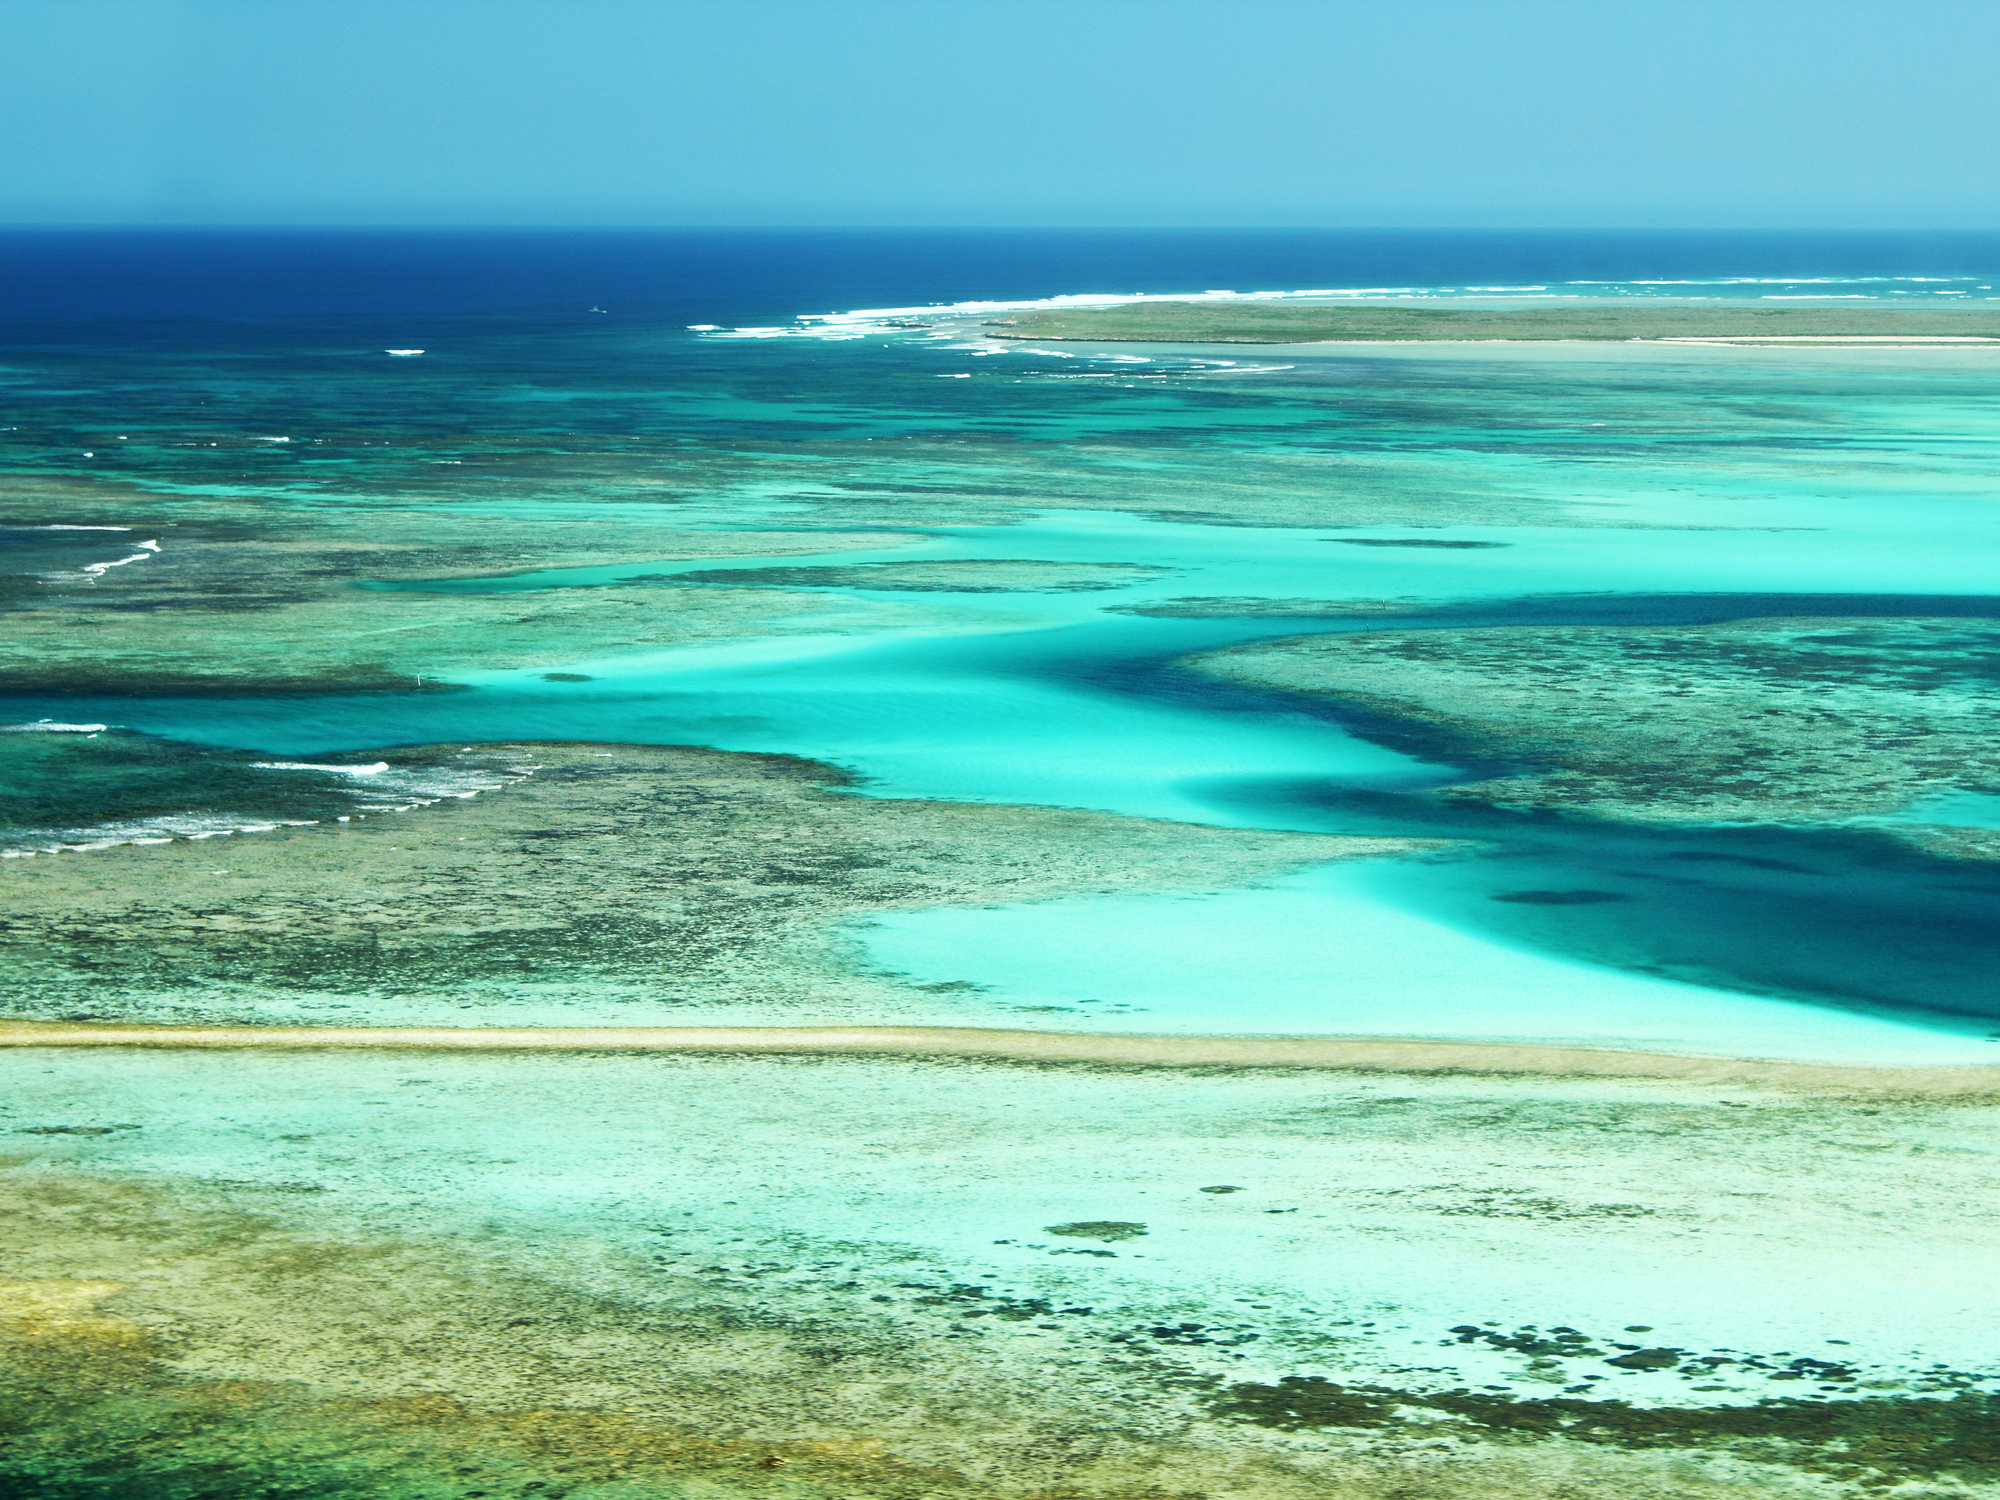 Australia's Abrolhos Islands & Rowley Shoals